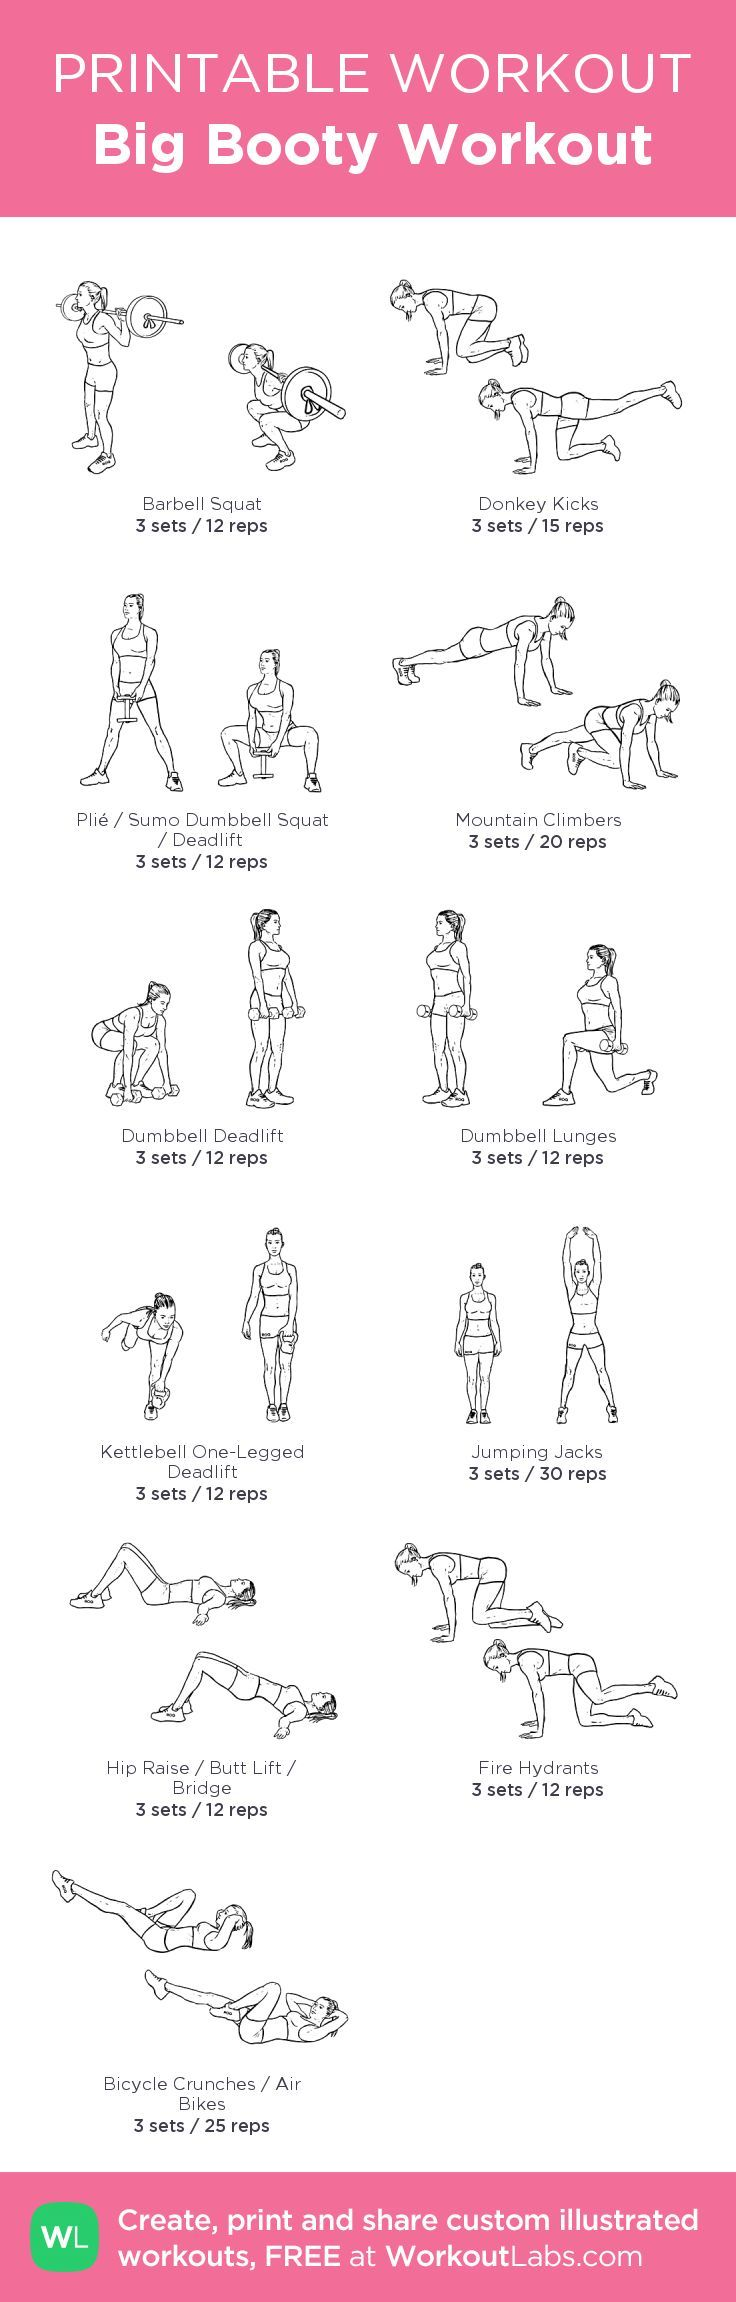 how to get bigger legs and bum at home